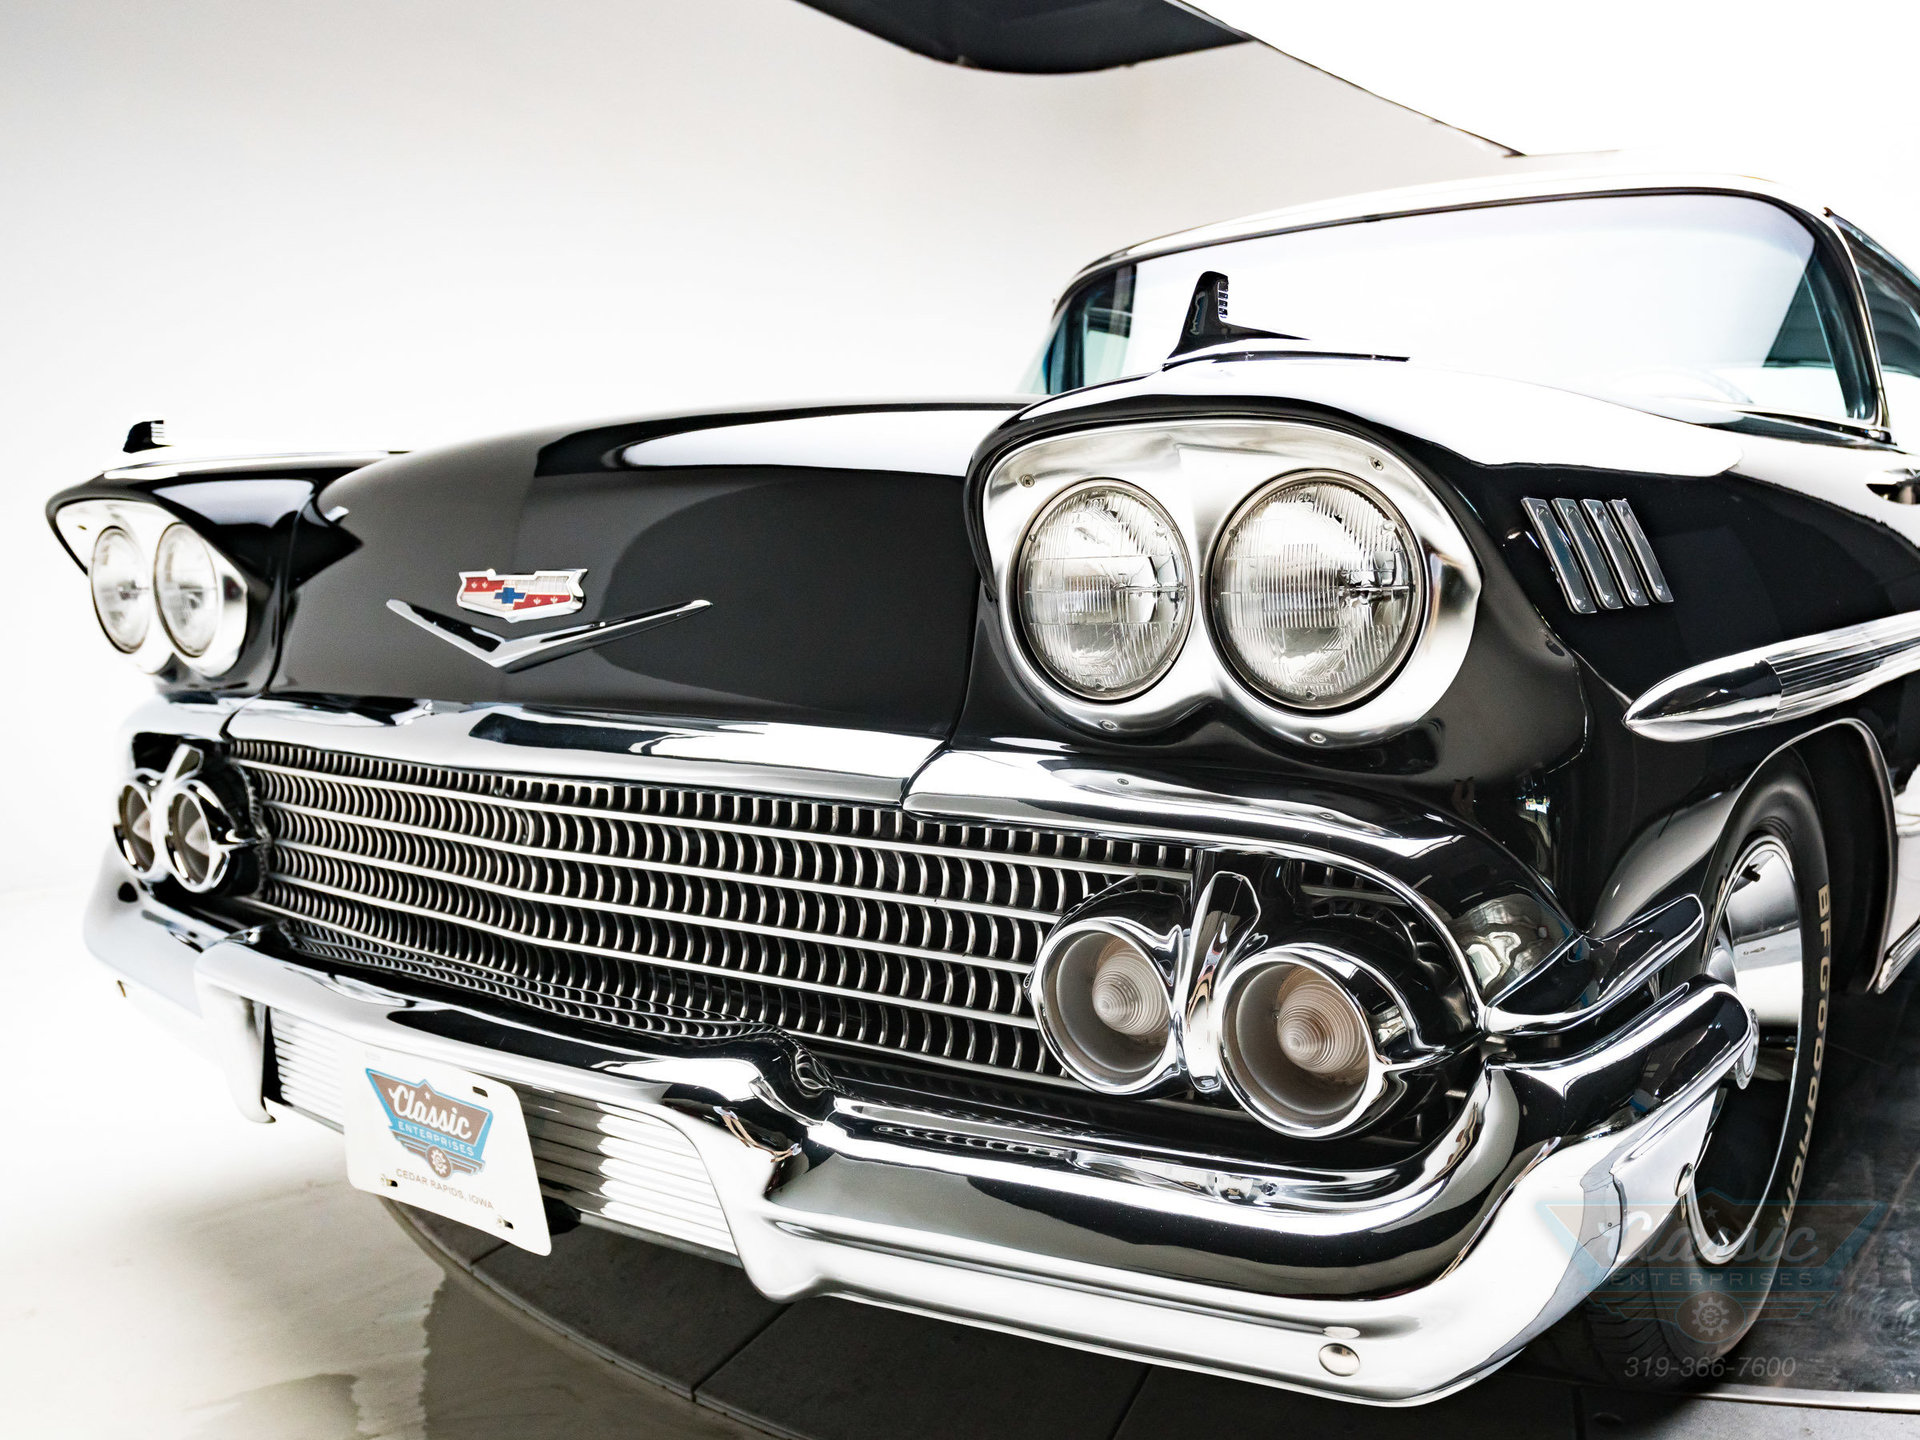 396751ed12df0 hd 1958 chevrolet impala